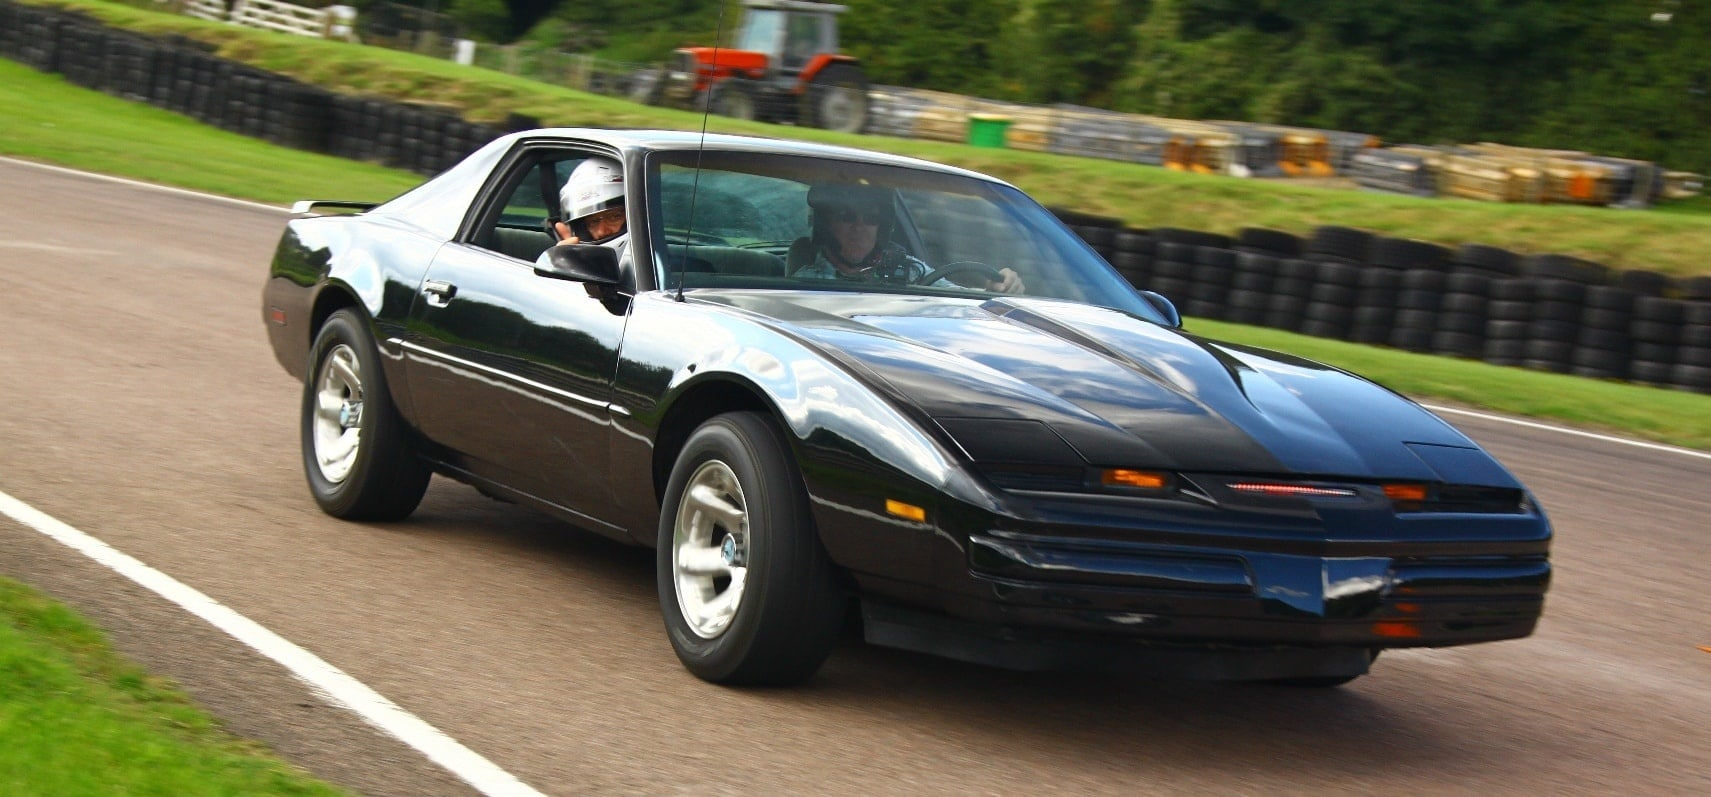 Knight Rider Pontiac Firebird Track Day Experience Days